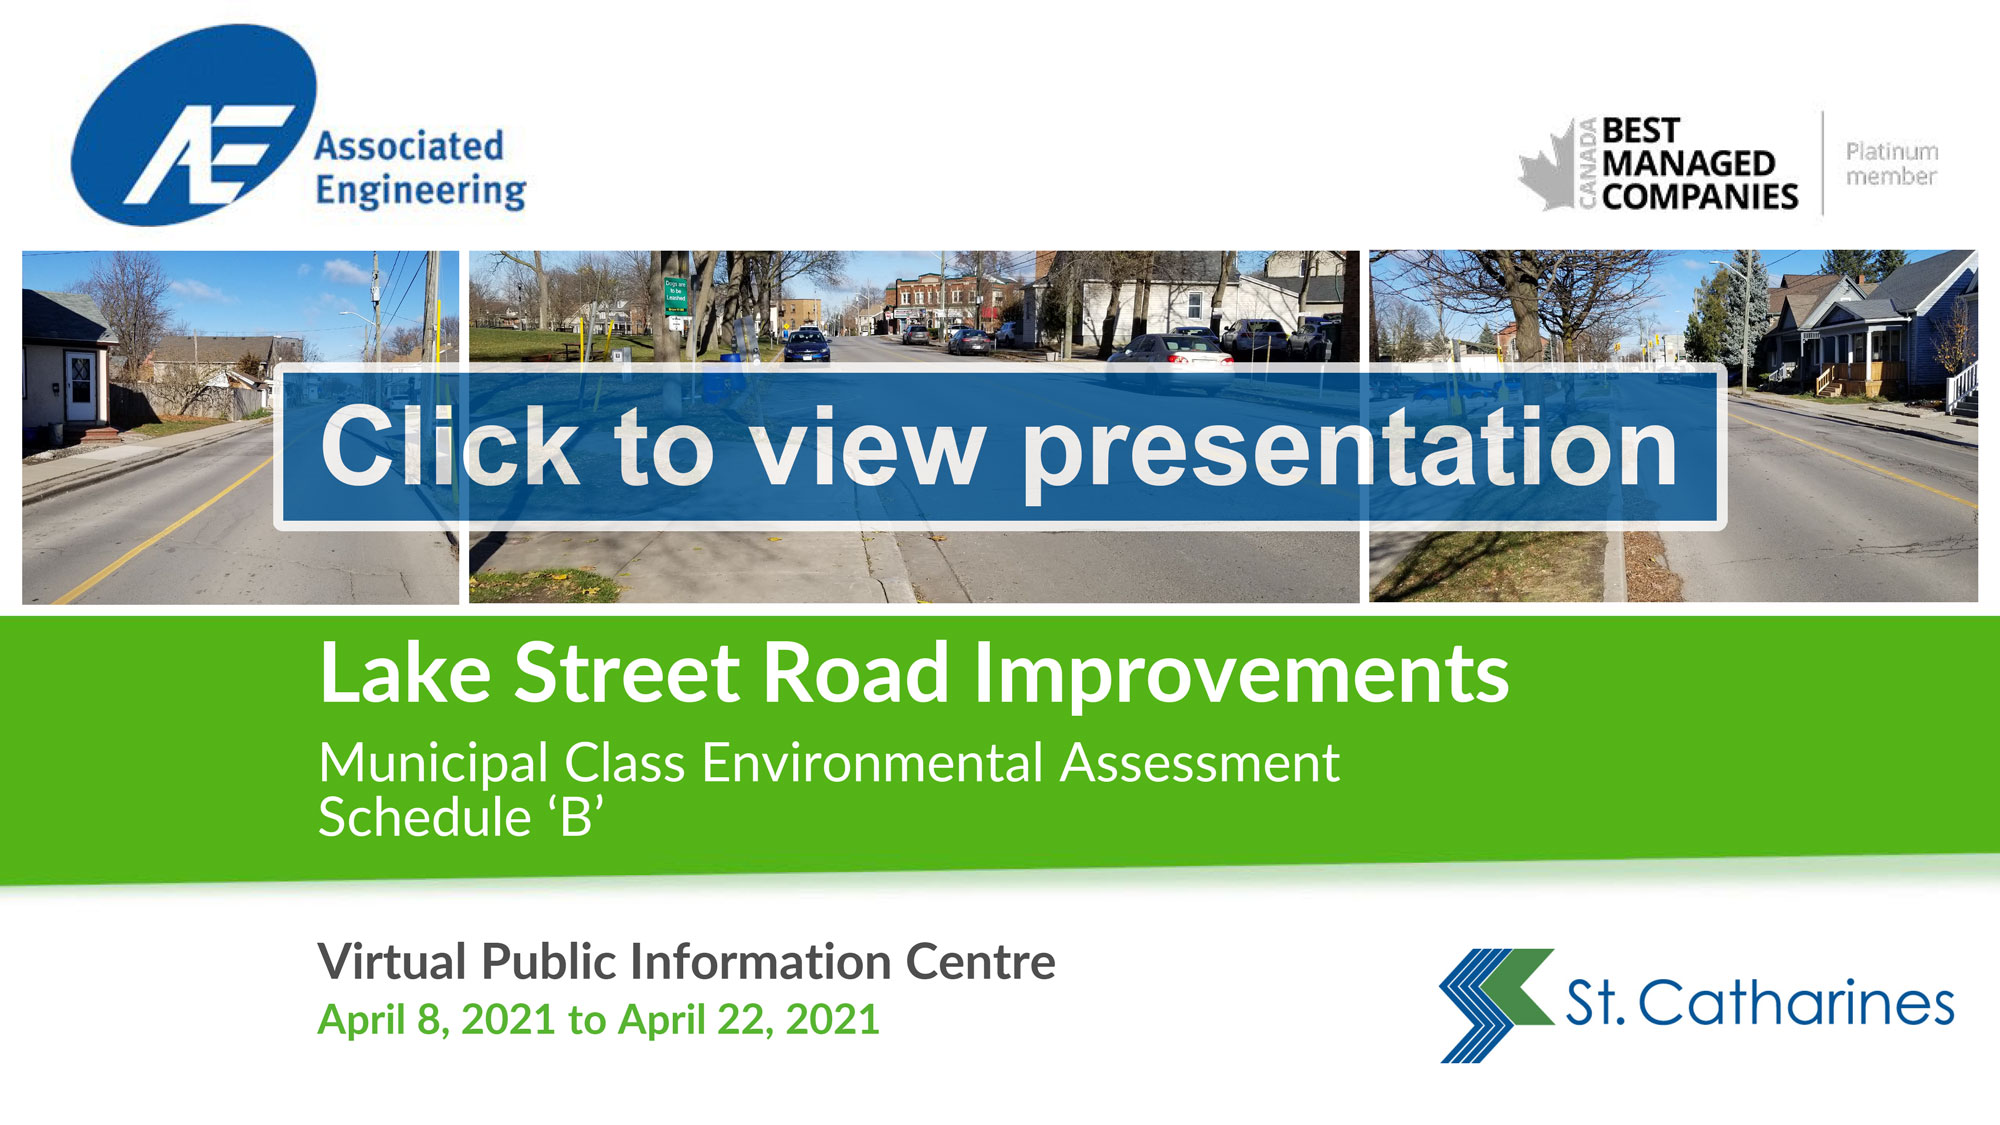 Click image to view Lake Street Presentation